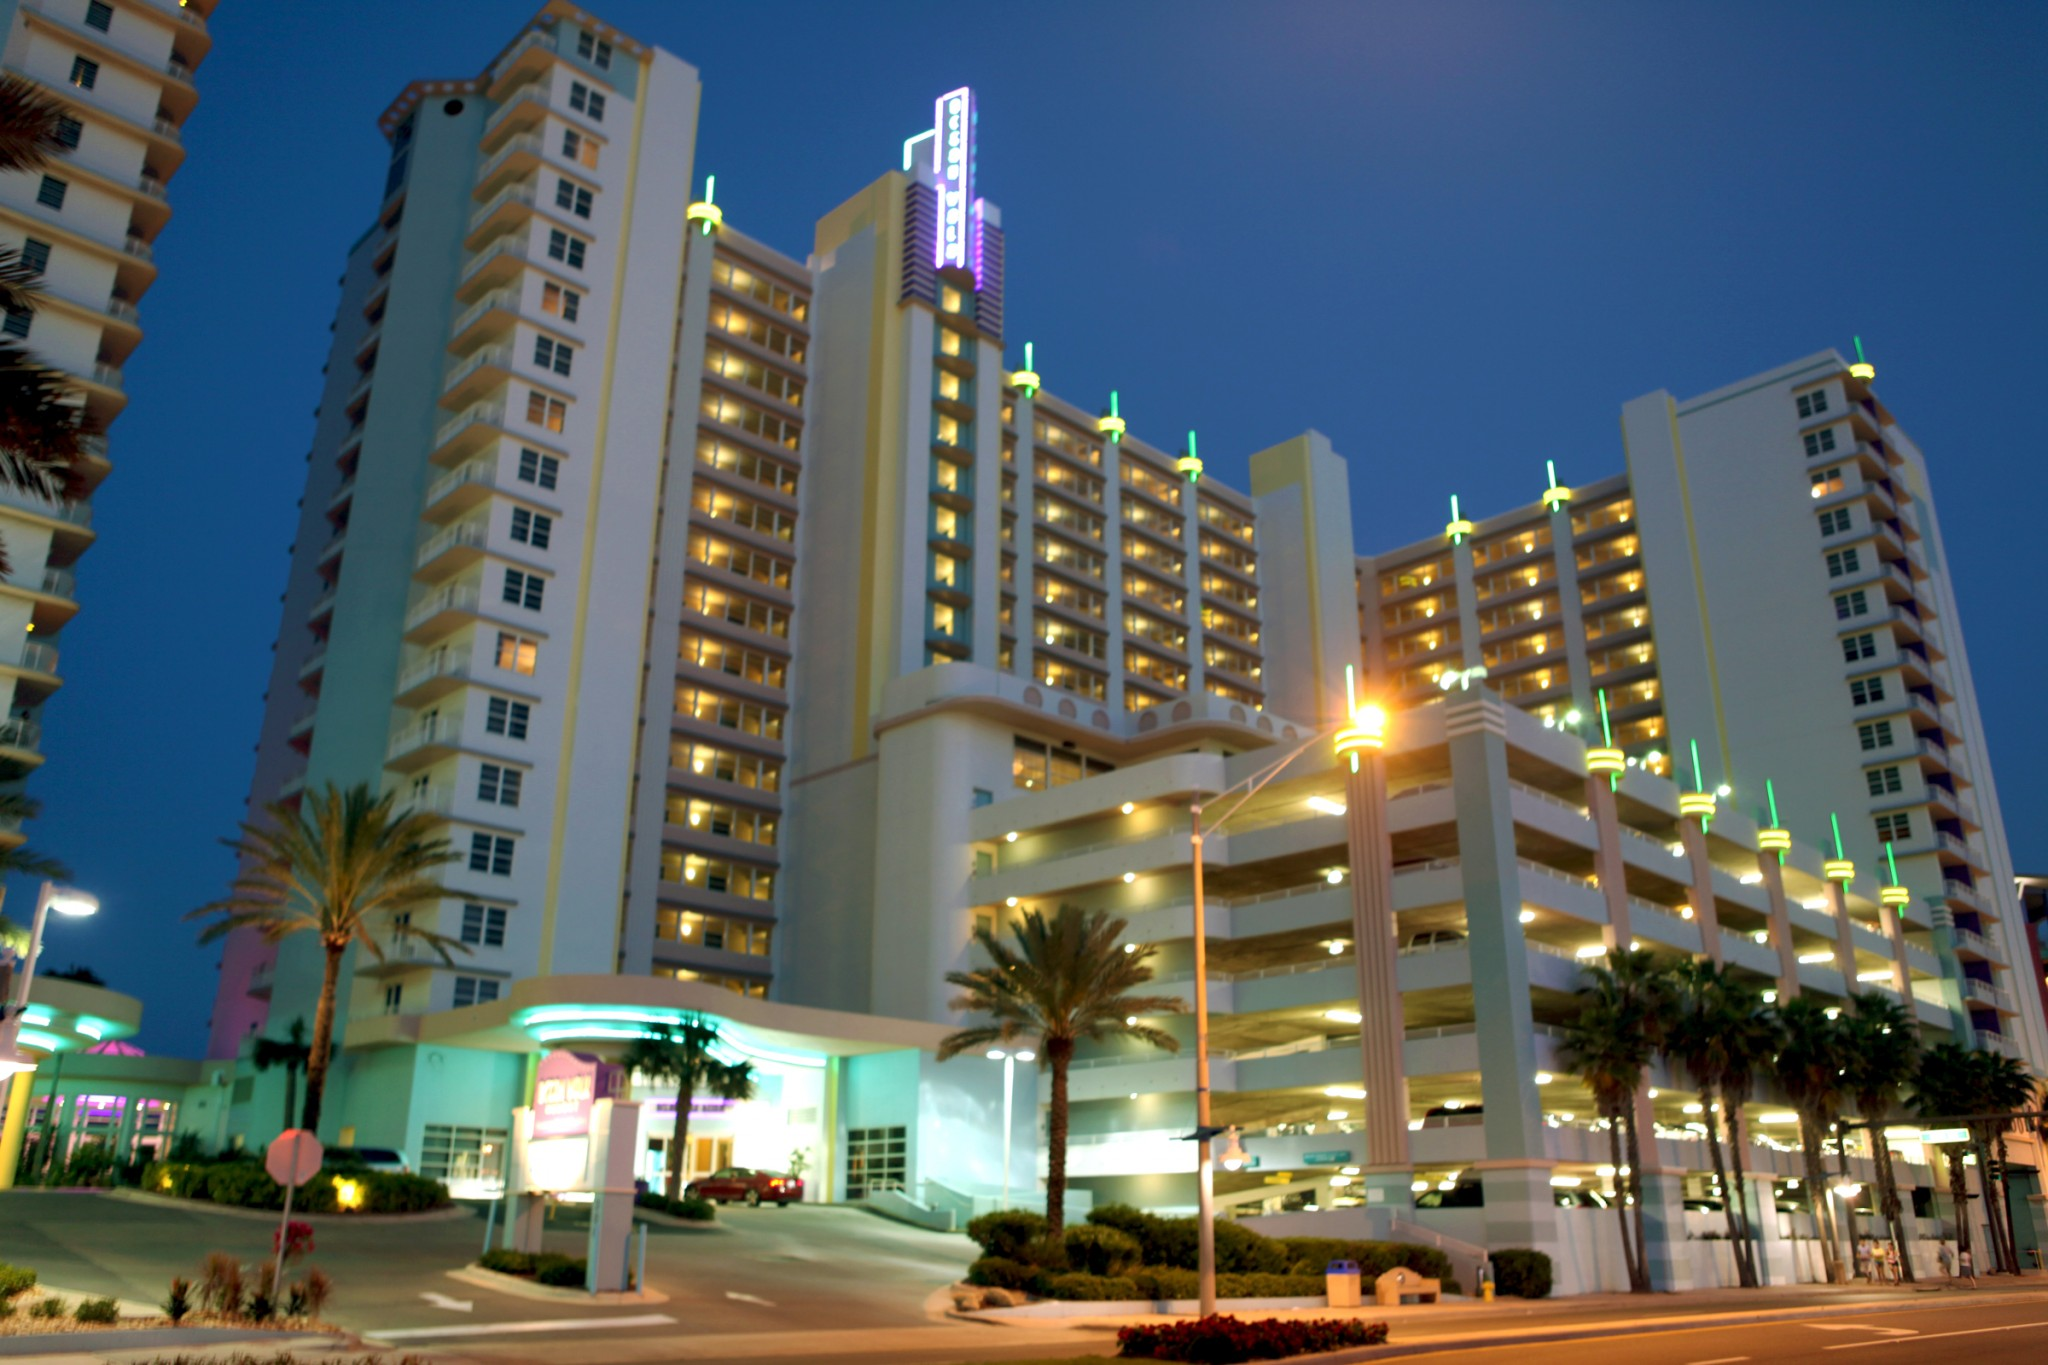 Accidental Discharge In Daytona Hotel Possibly Hits 12 Year Old Boy Alloutdoor